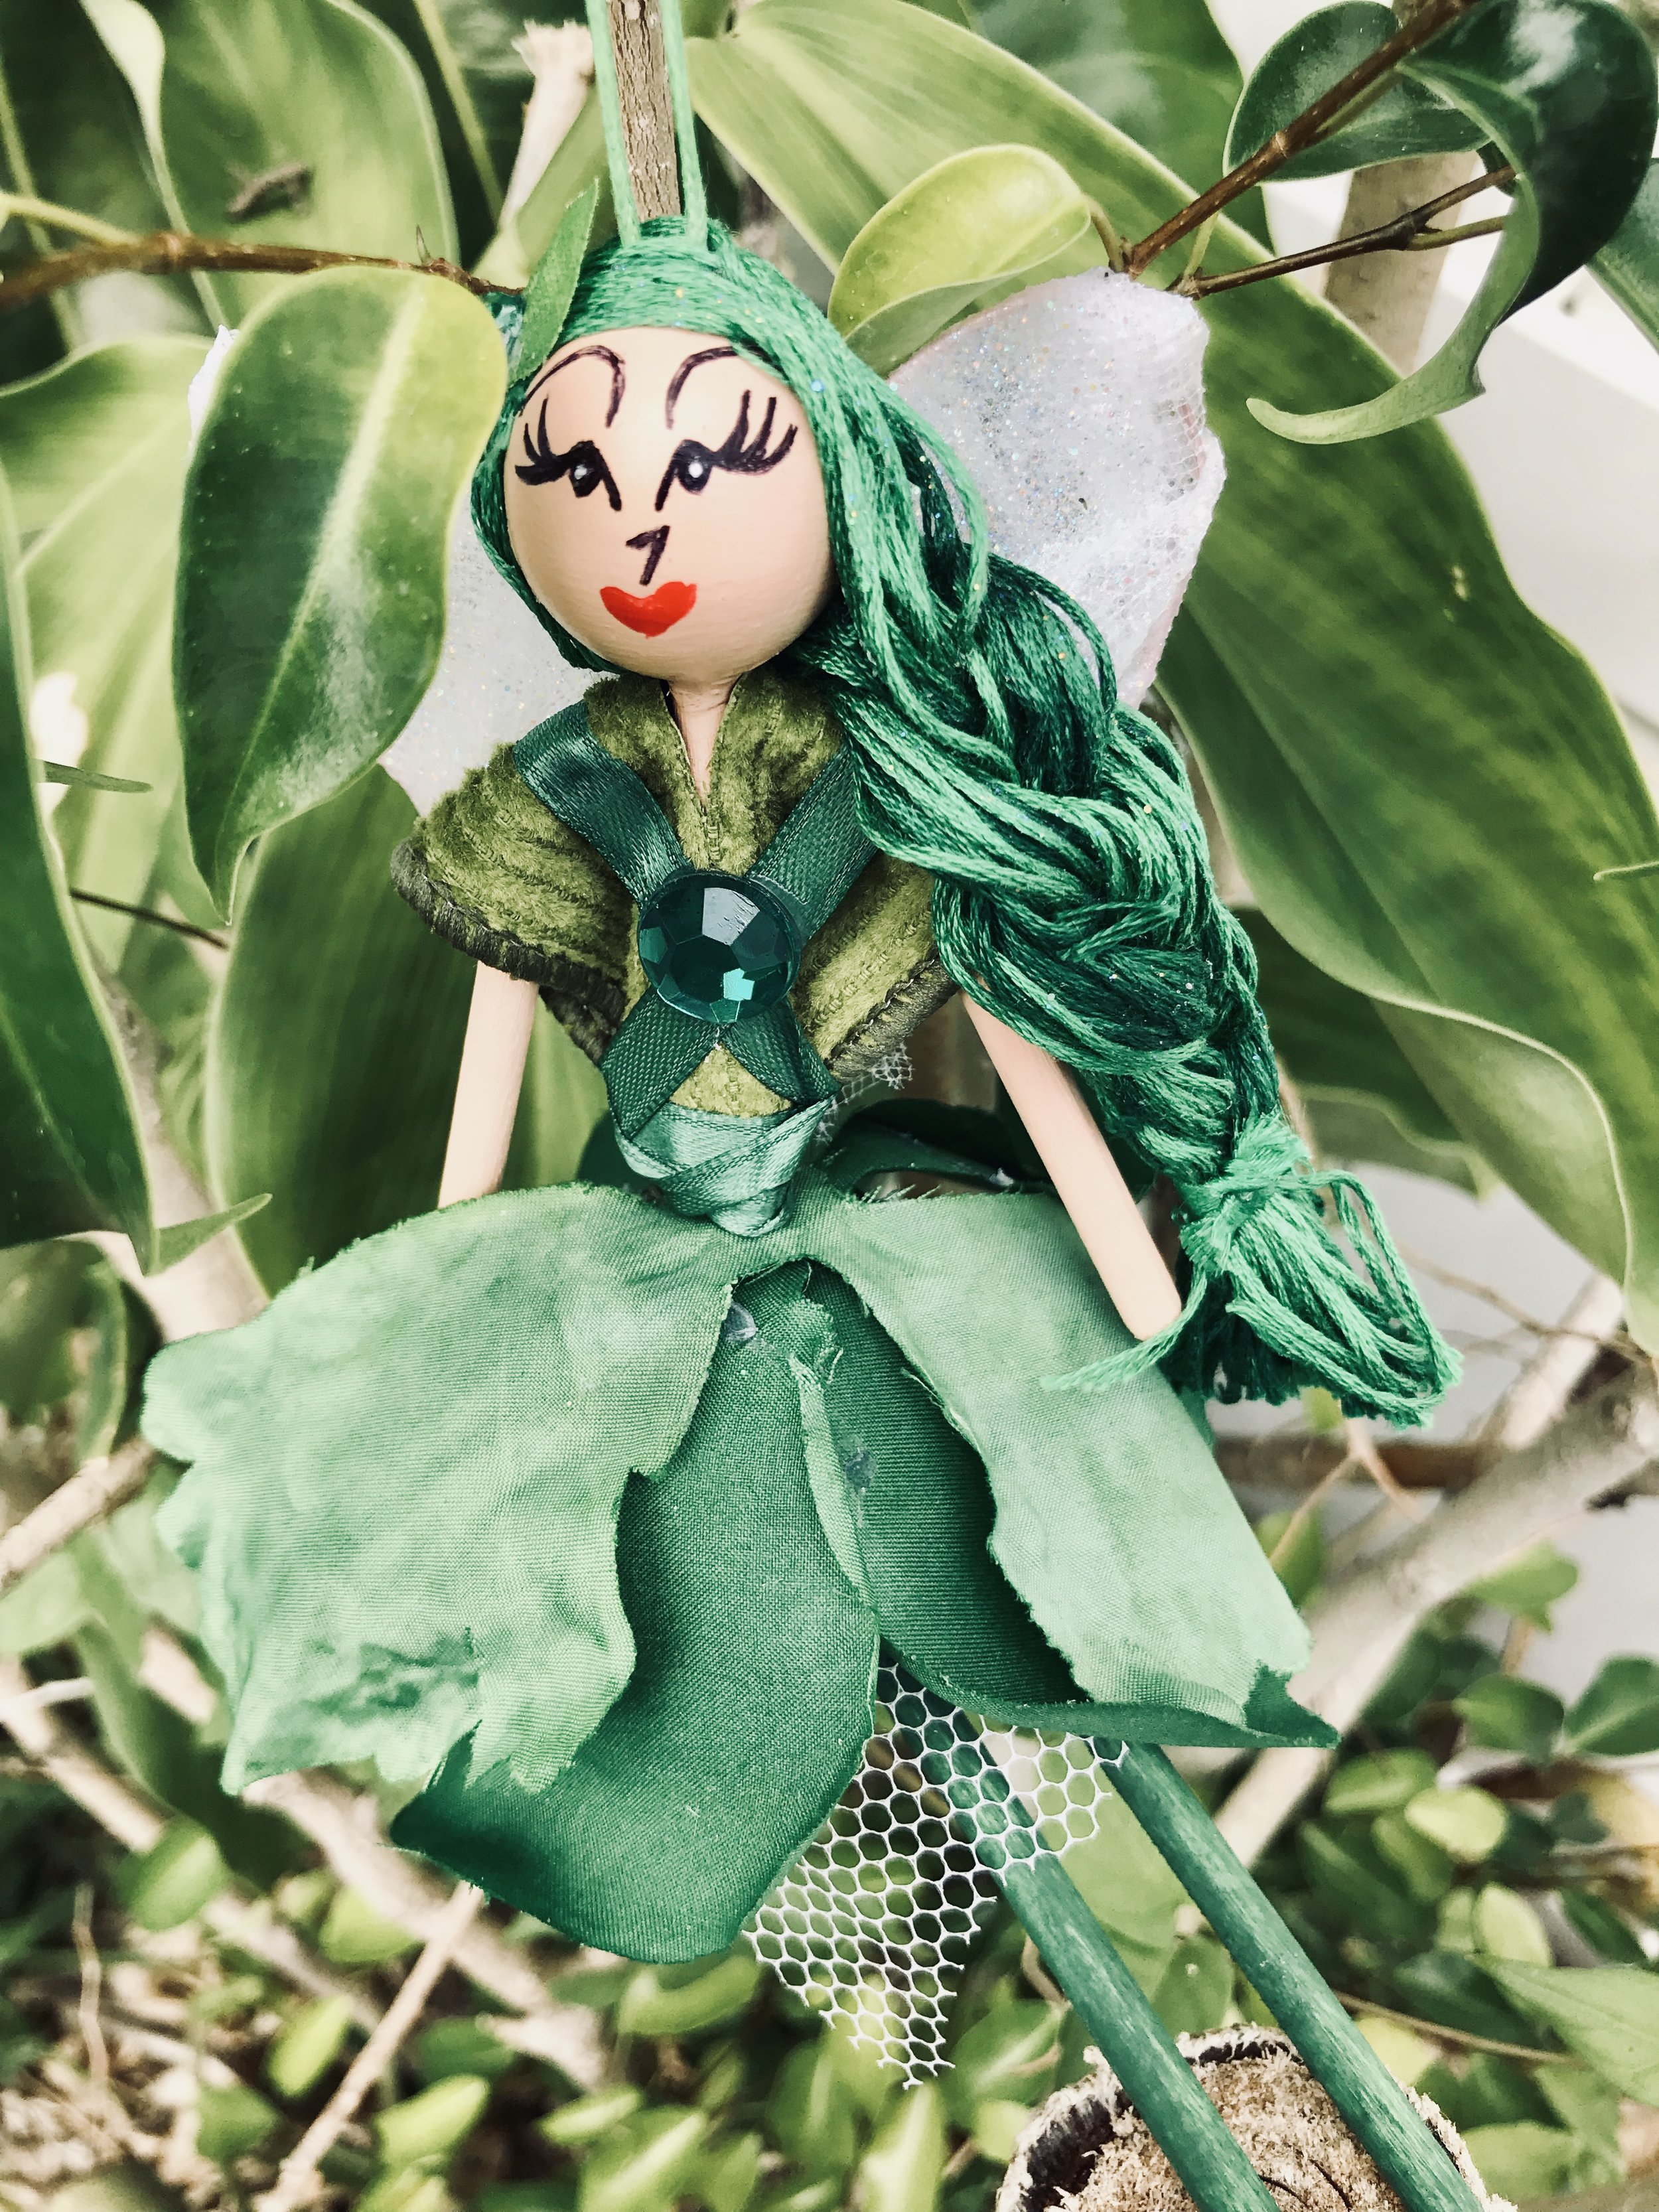 MAY ~Lady Emerald - May is full of magical gifts, and no one promotes them better than Lady Emerald. Born in the fifth and fortuitous month of the year, Lady Emerald represents spring's lush green energies of life and growth. Having her nearby inspires change in the right direction, and new found chi for achievements. Let her be a reminder that all of May's children share the same special gifts, and that it's never too late to let them sparkle.$20.00 (includes tax)